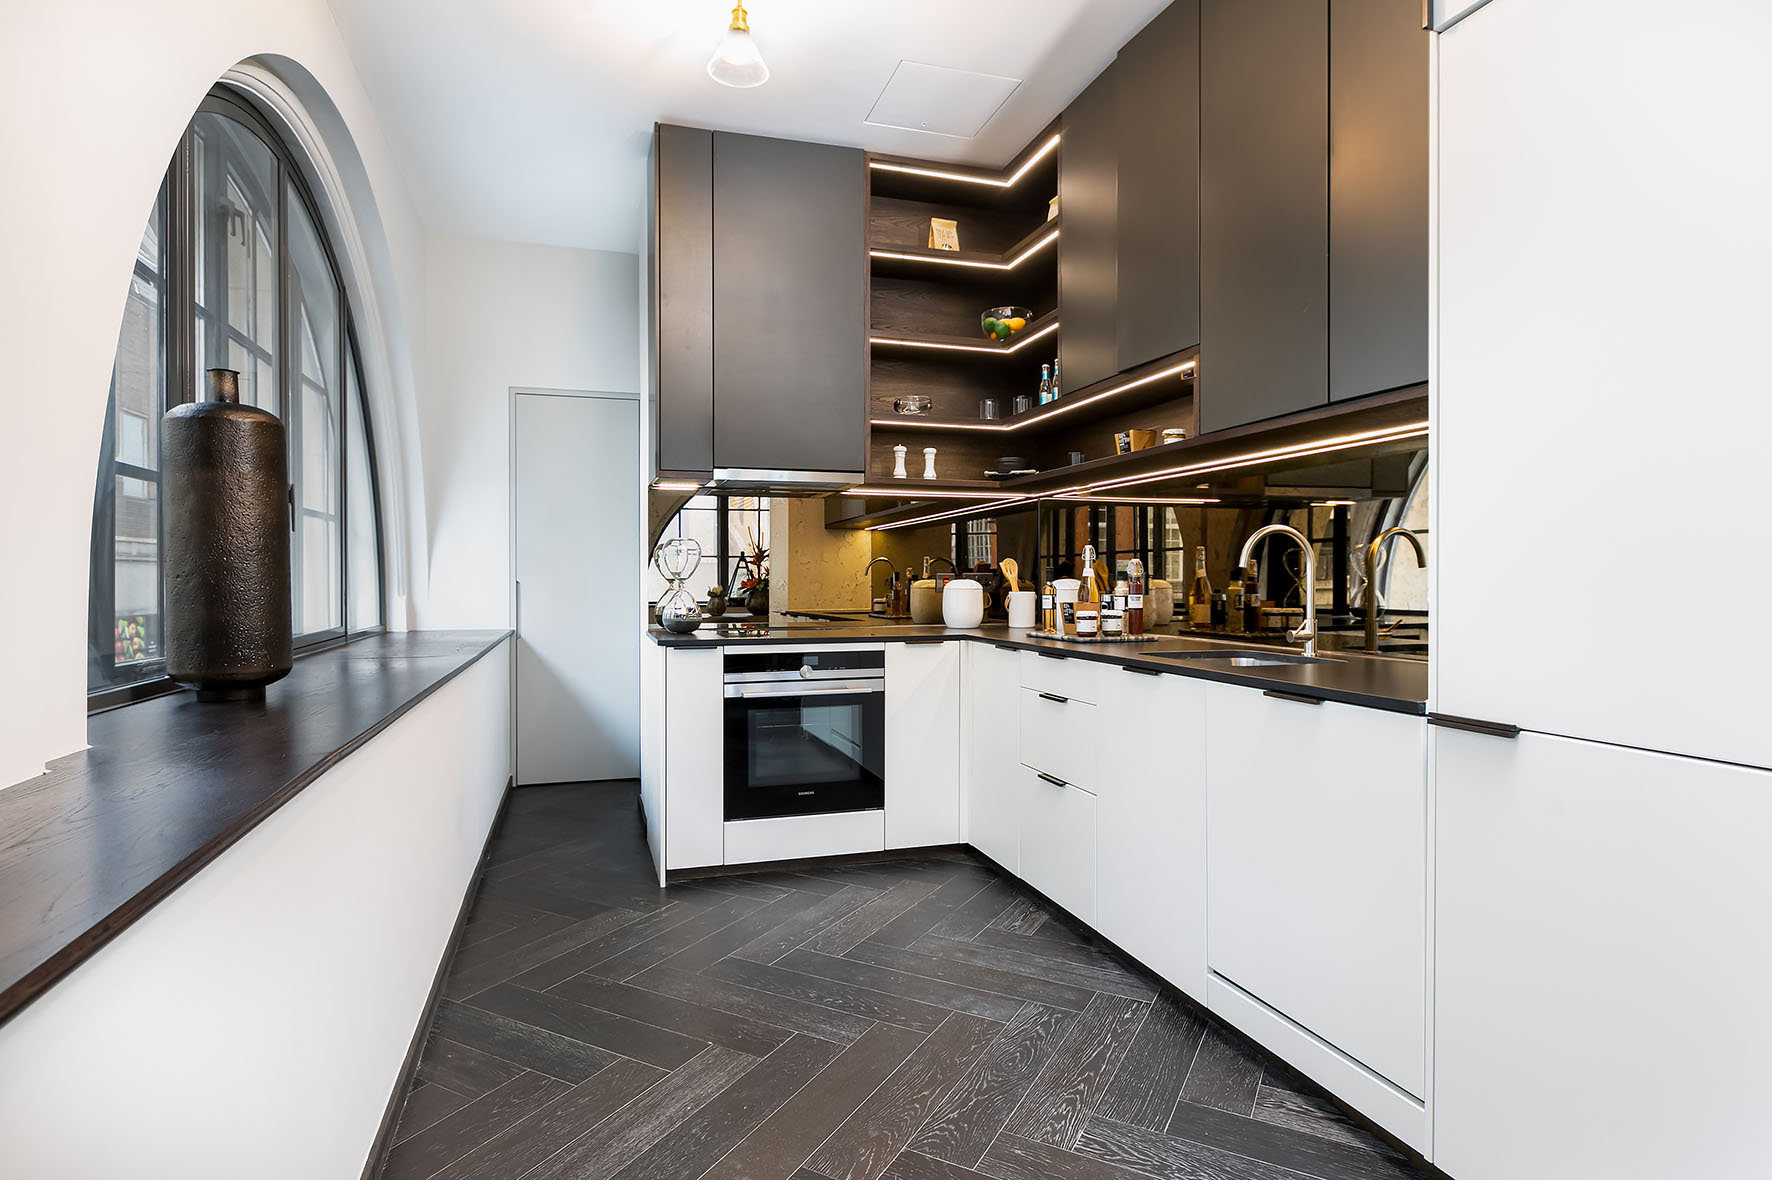 Lovelydays luxury service apartment rental - London - Soho - Berwick Street I - Lovelysuite - 3 bedrooms - 3 bathrooms - Luxury kitchen - 5d1c7df28cf2 - Lovelydays